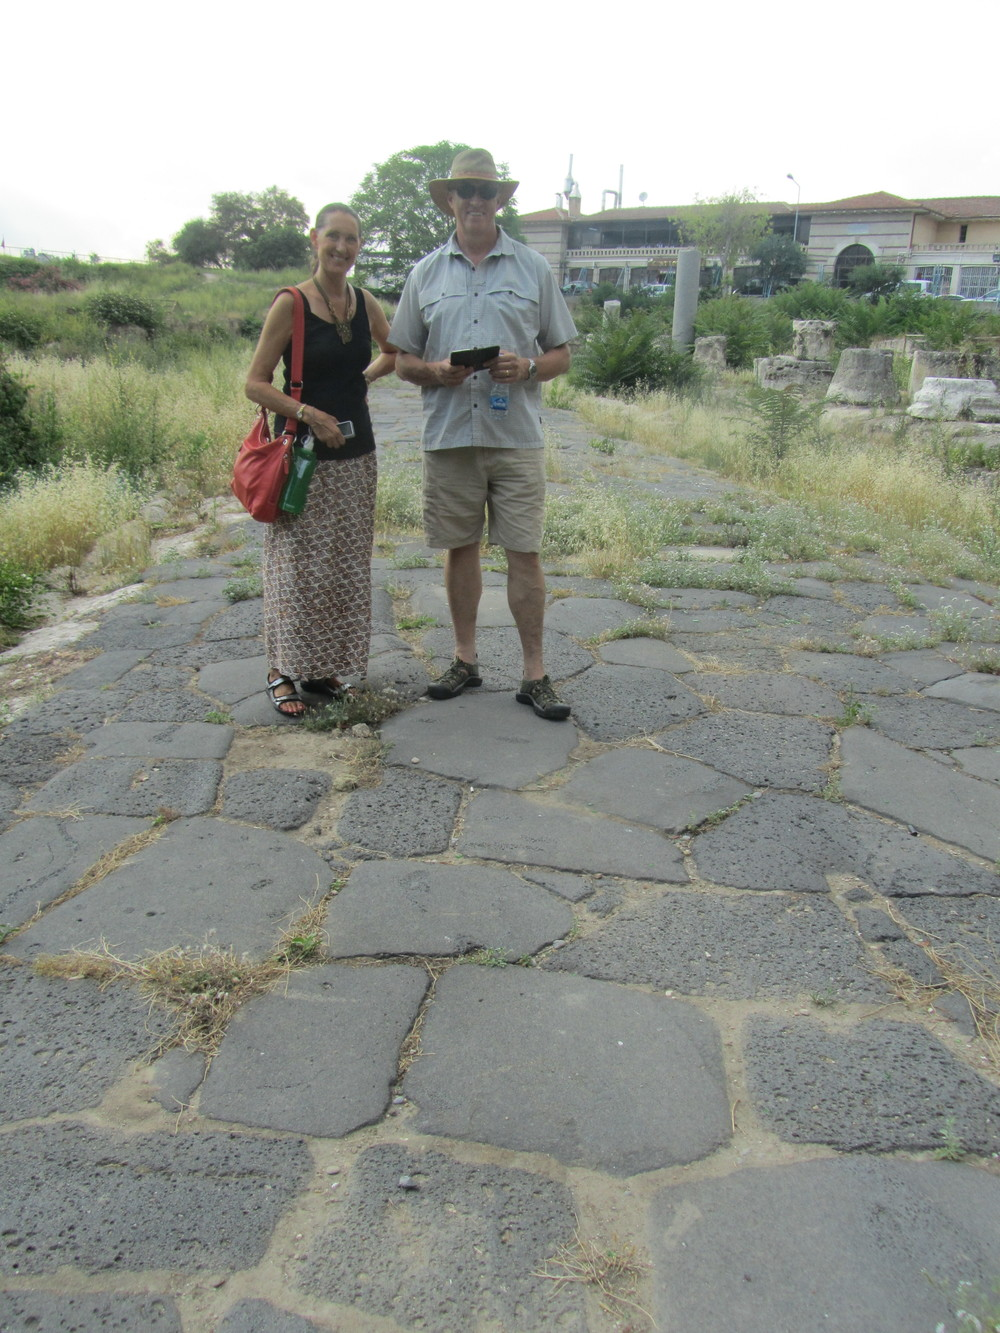 The ancient basalt street in Tarsus